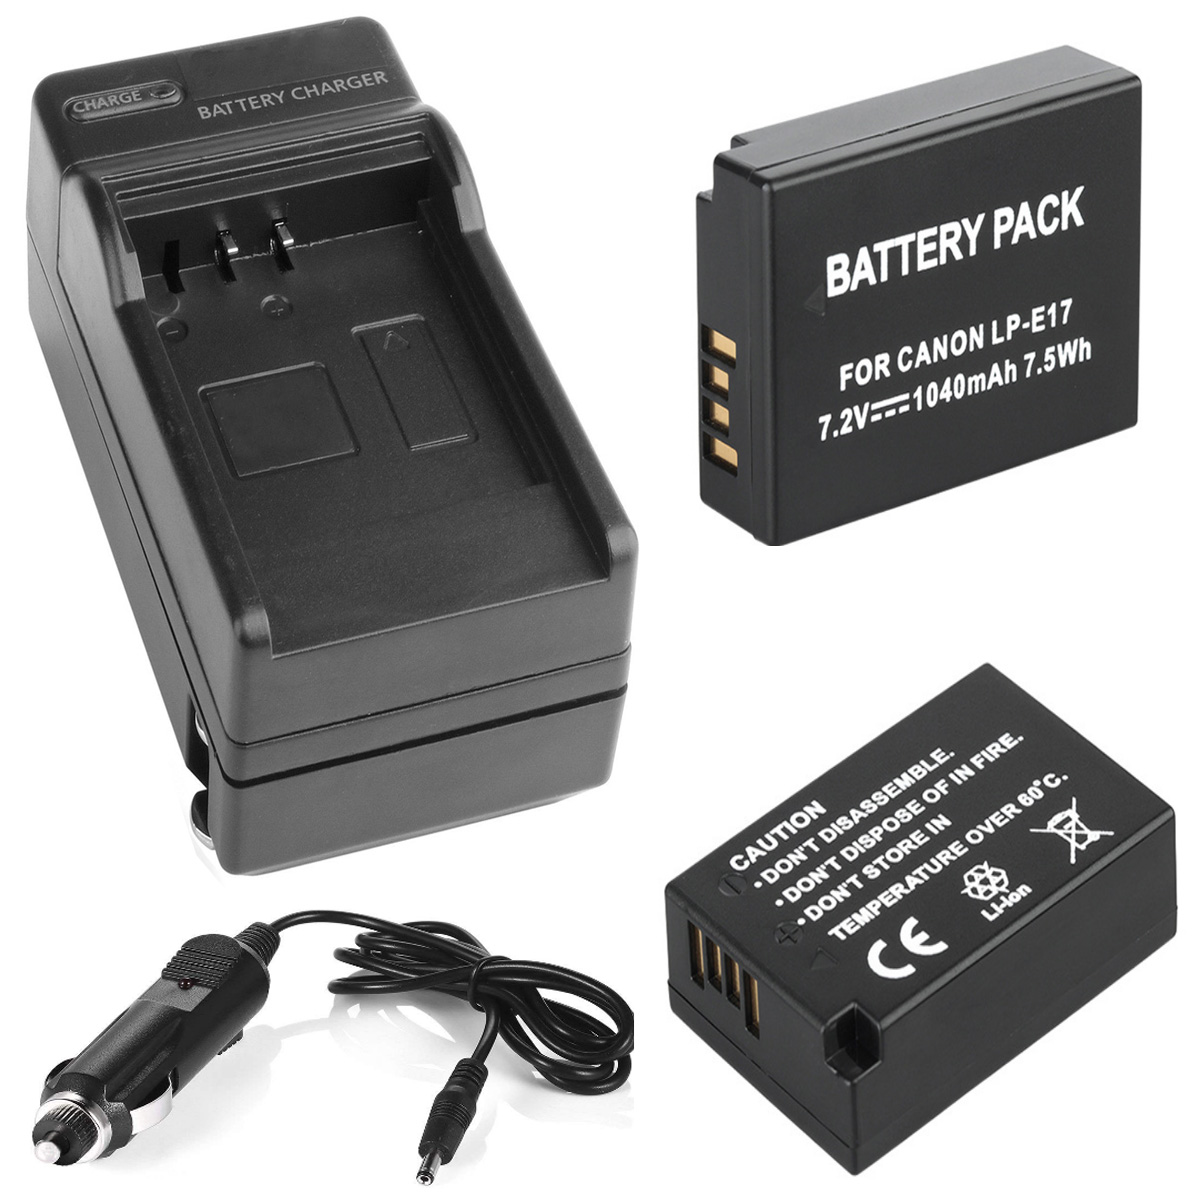 LP E17 Battery (2) + Charger For Canon EOS 77D,200D,750D,760D,800D, 8000D,9000D, EOS Rebel SL2, T6s, T6i, T7i Digital SLR Camera